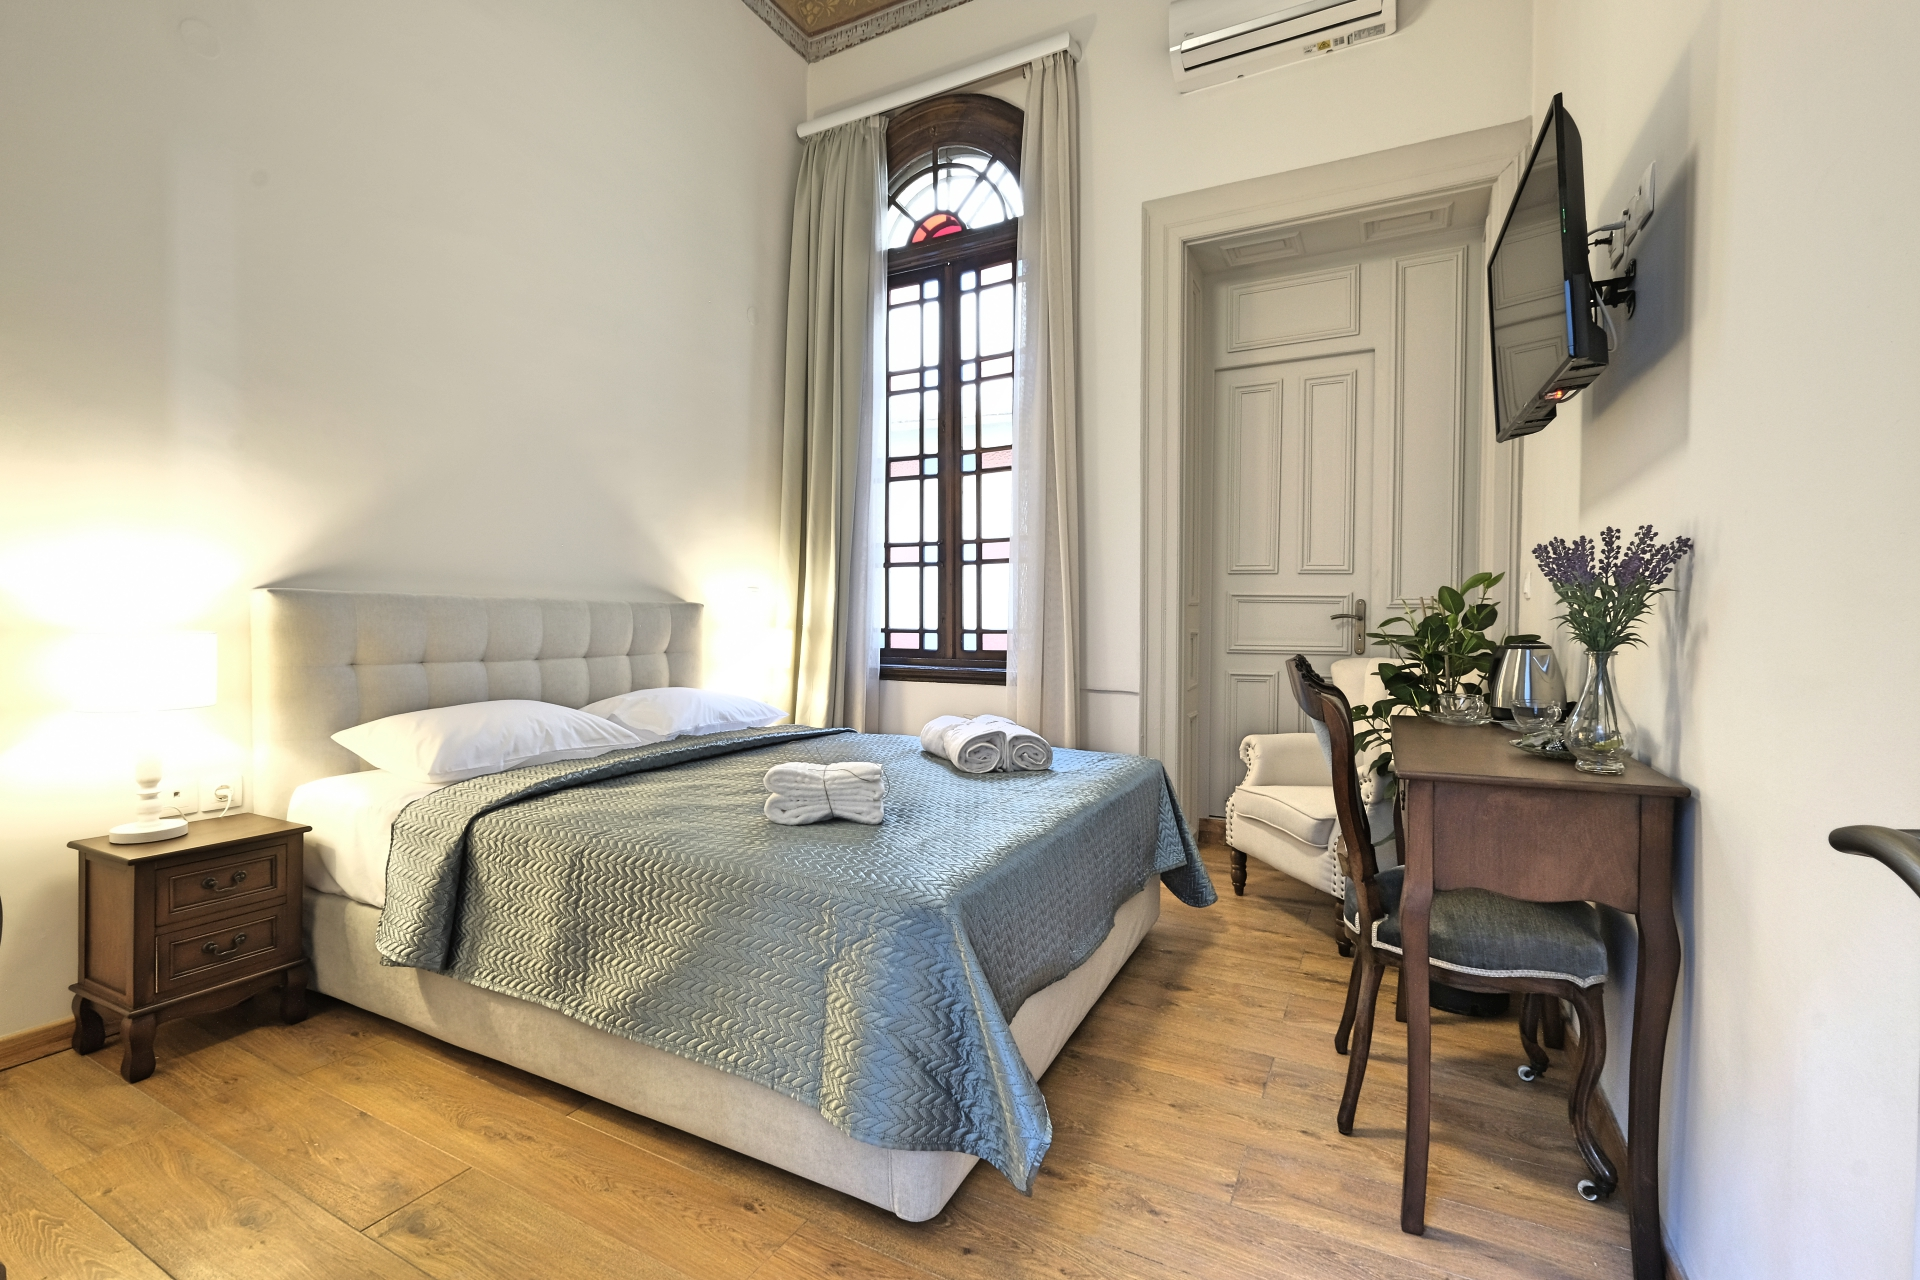 Standard Double Room with Double Bed & Painted Ceiling 1 - Agora Residence - Hotel in Chios